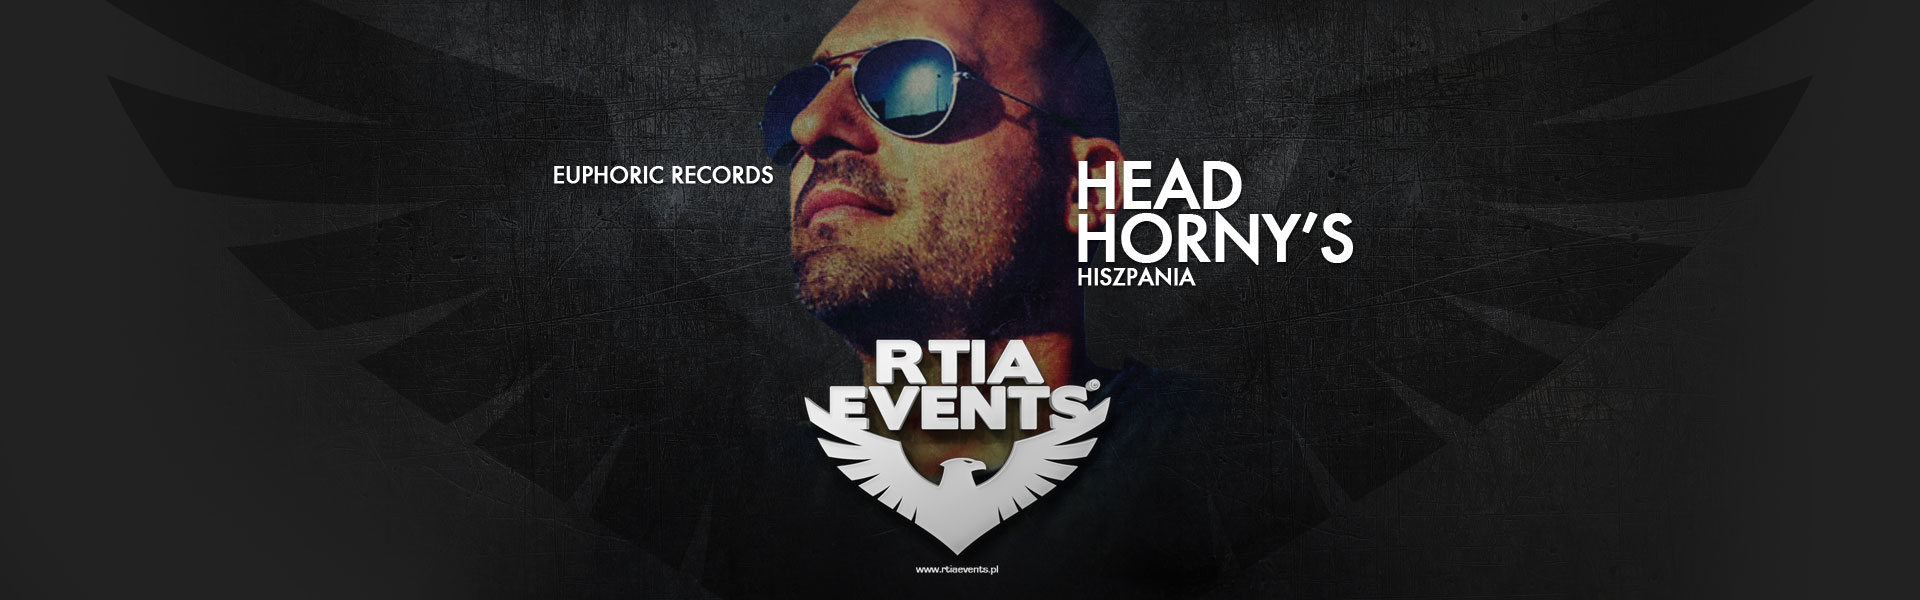 http://www.rtiaevents.pl/wp-content/uploads/2014/03/headhornys1.jpg